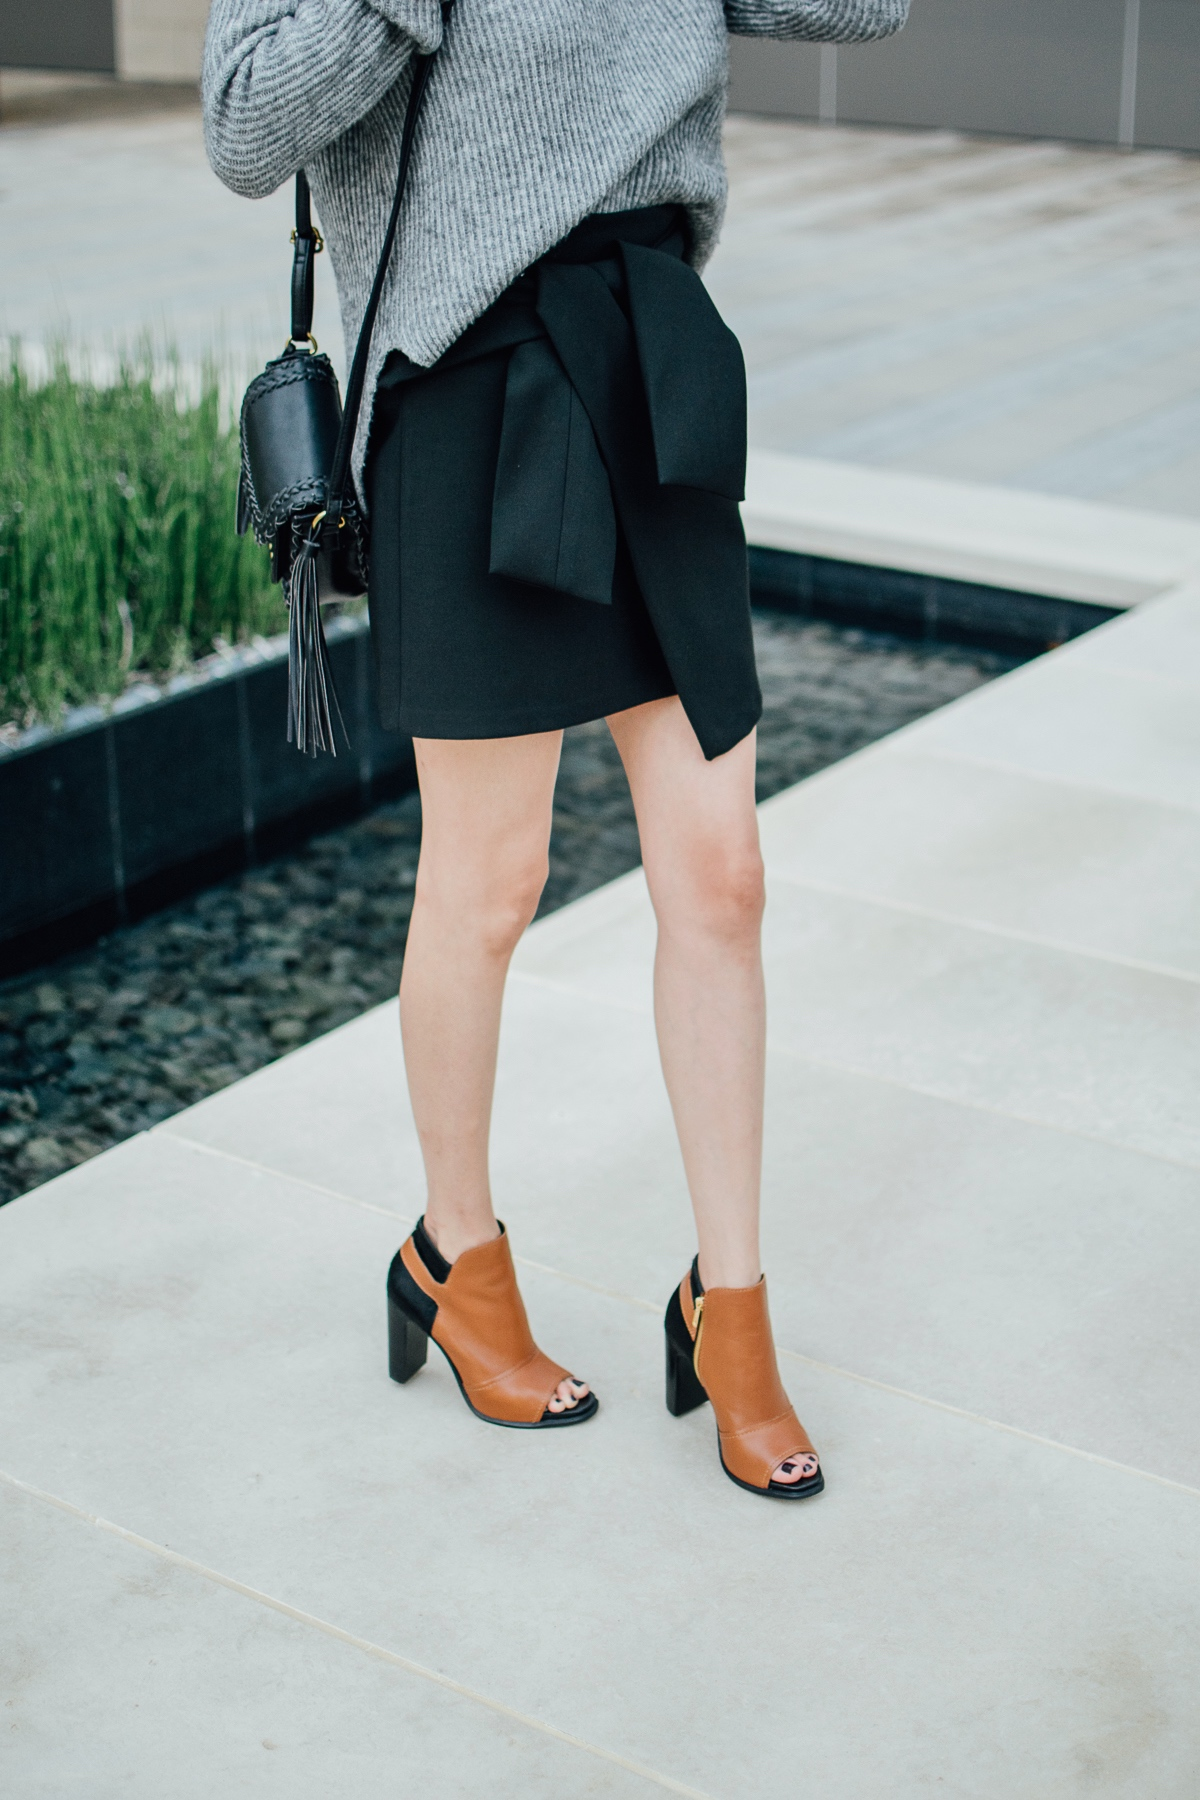 Style blogger Daily Craving wearing M4D3 leather booties with a wrap skirt and grey sweater